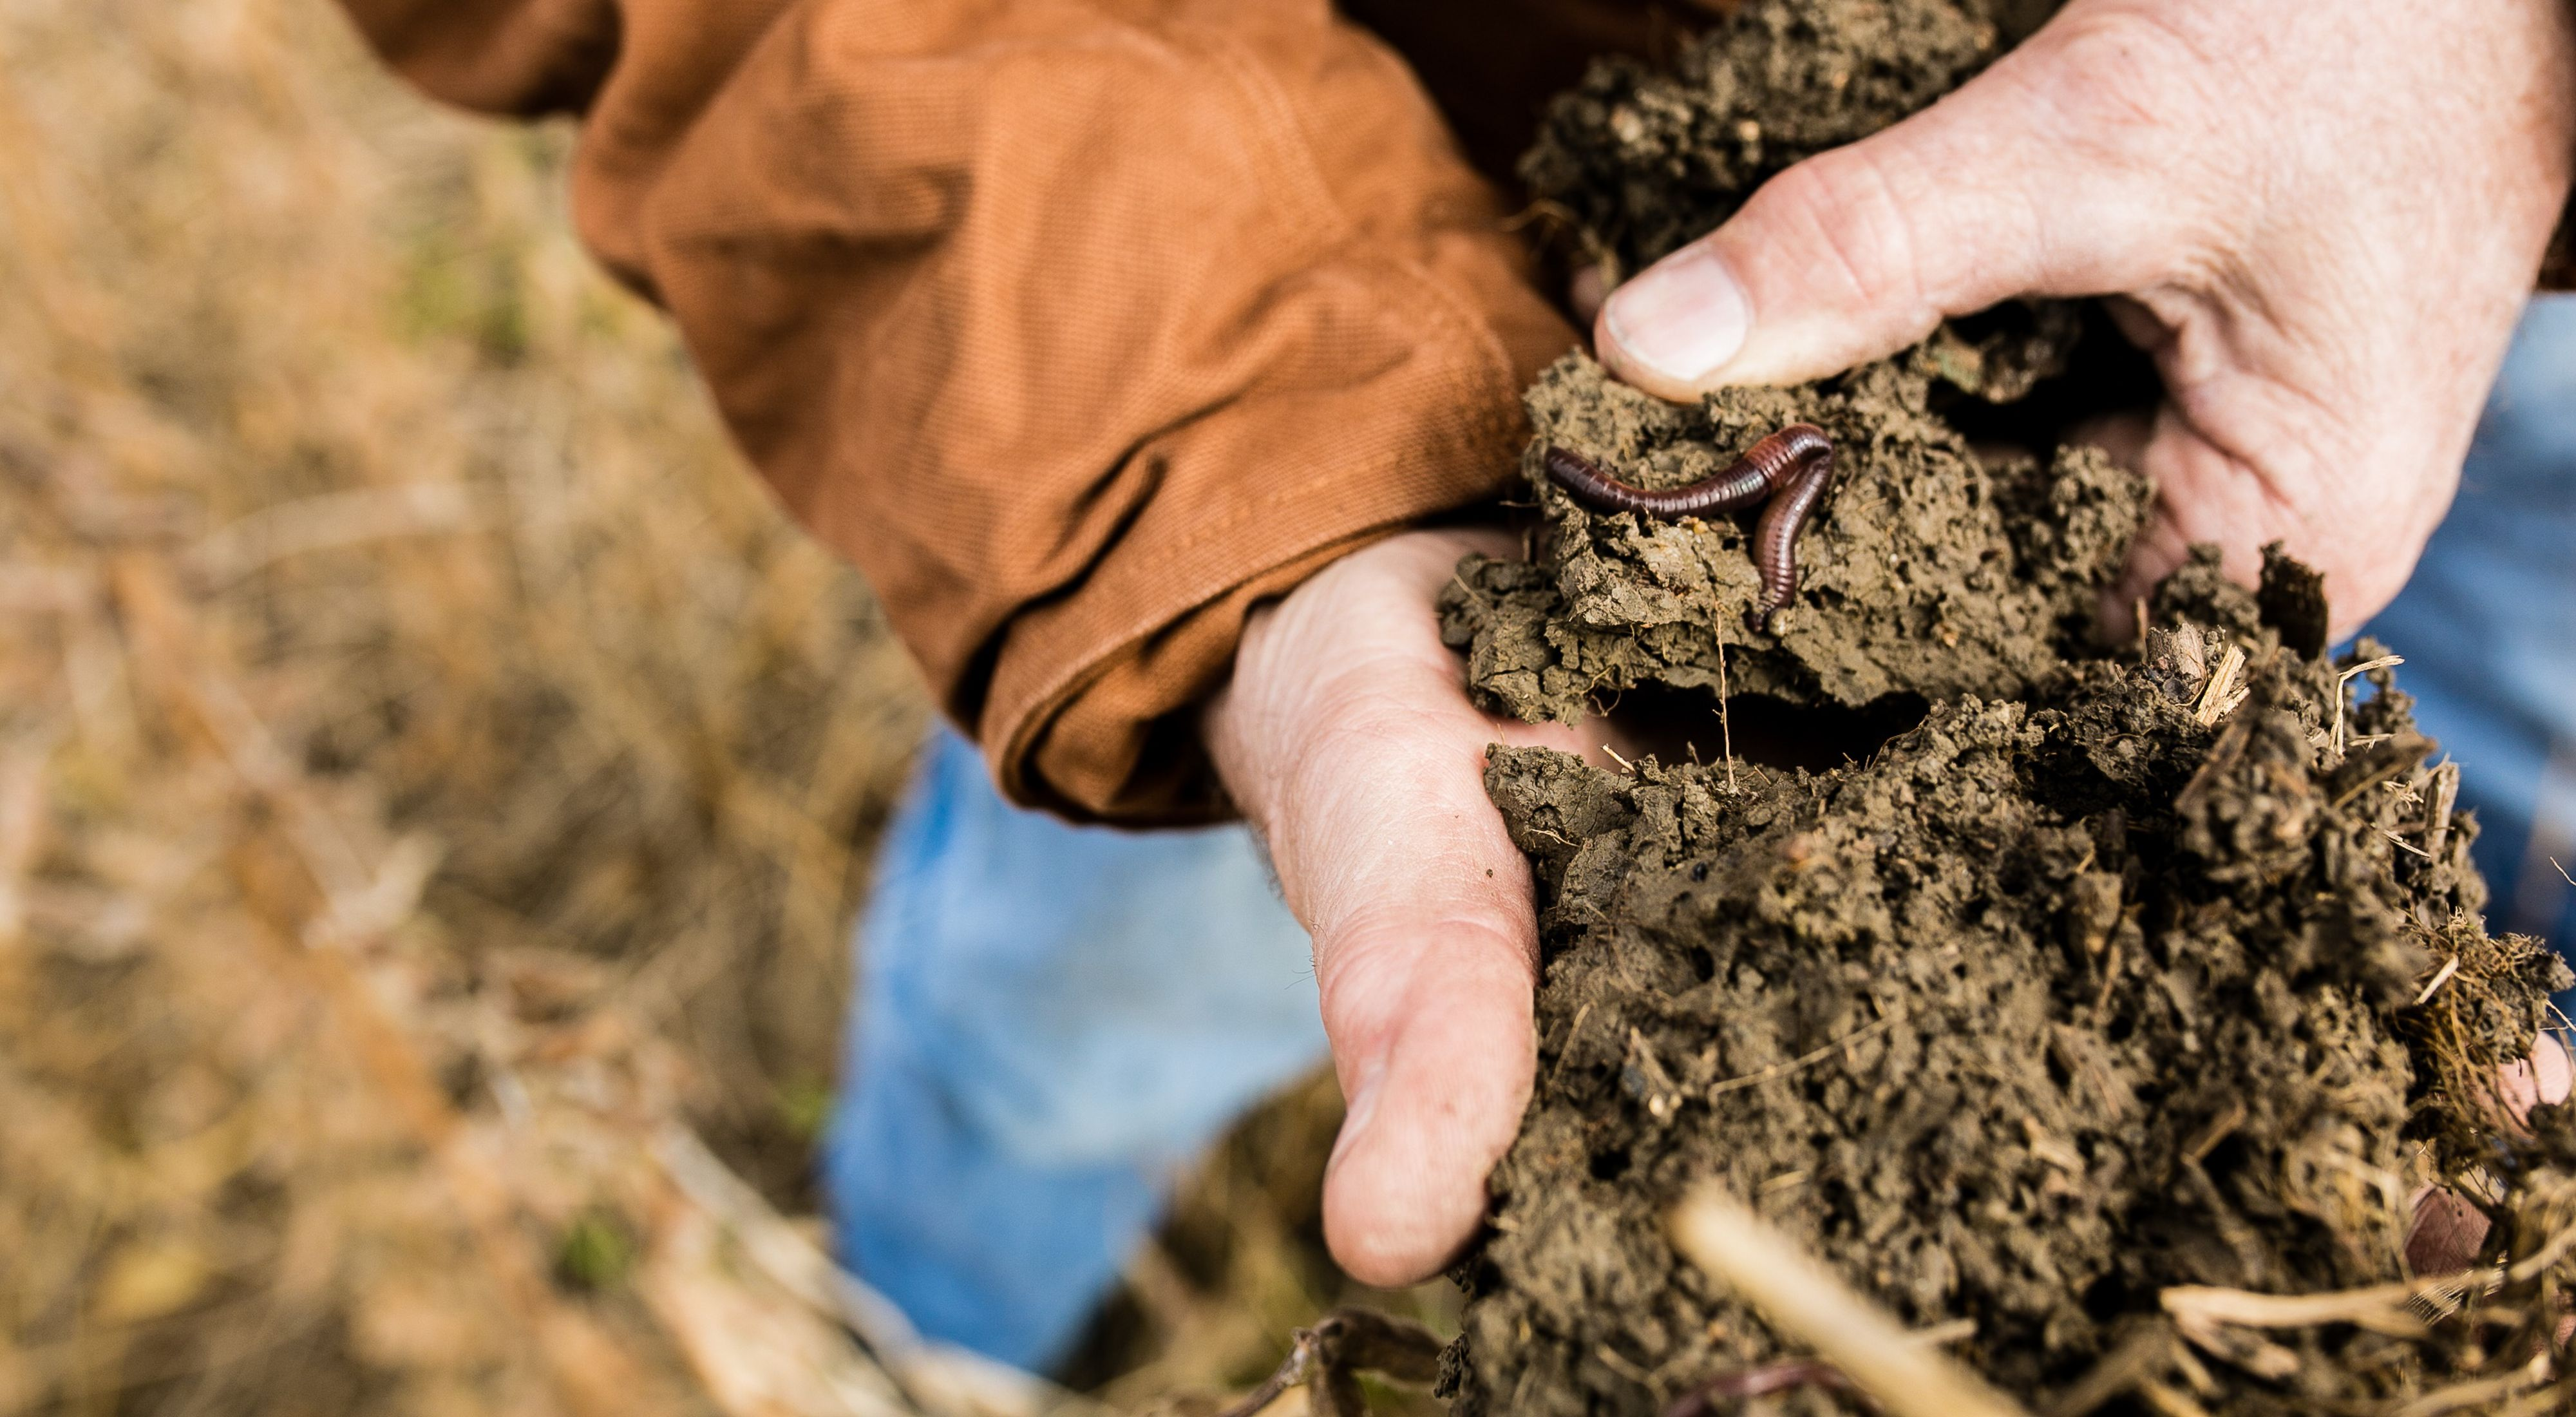 Soil is one of the most biologically diverse ecosystems on Earth.